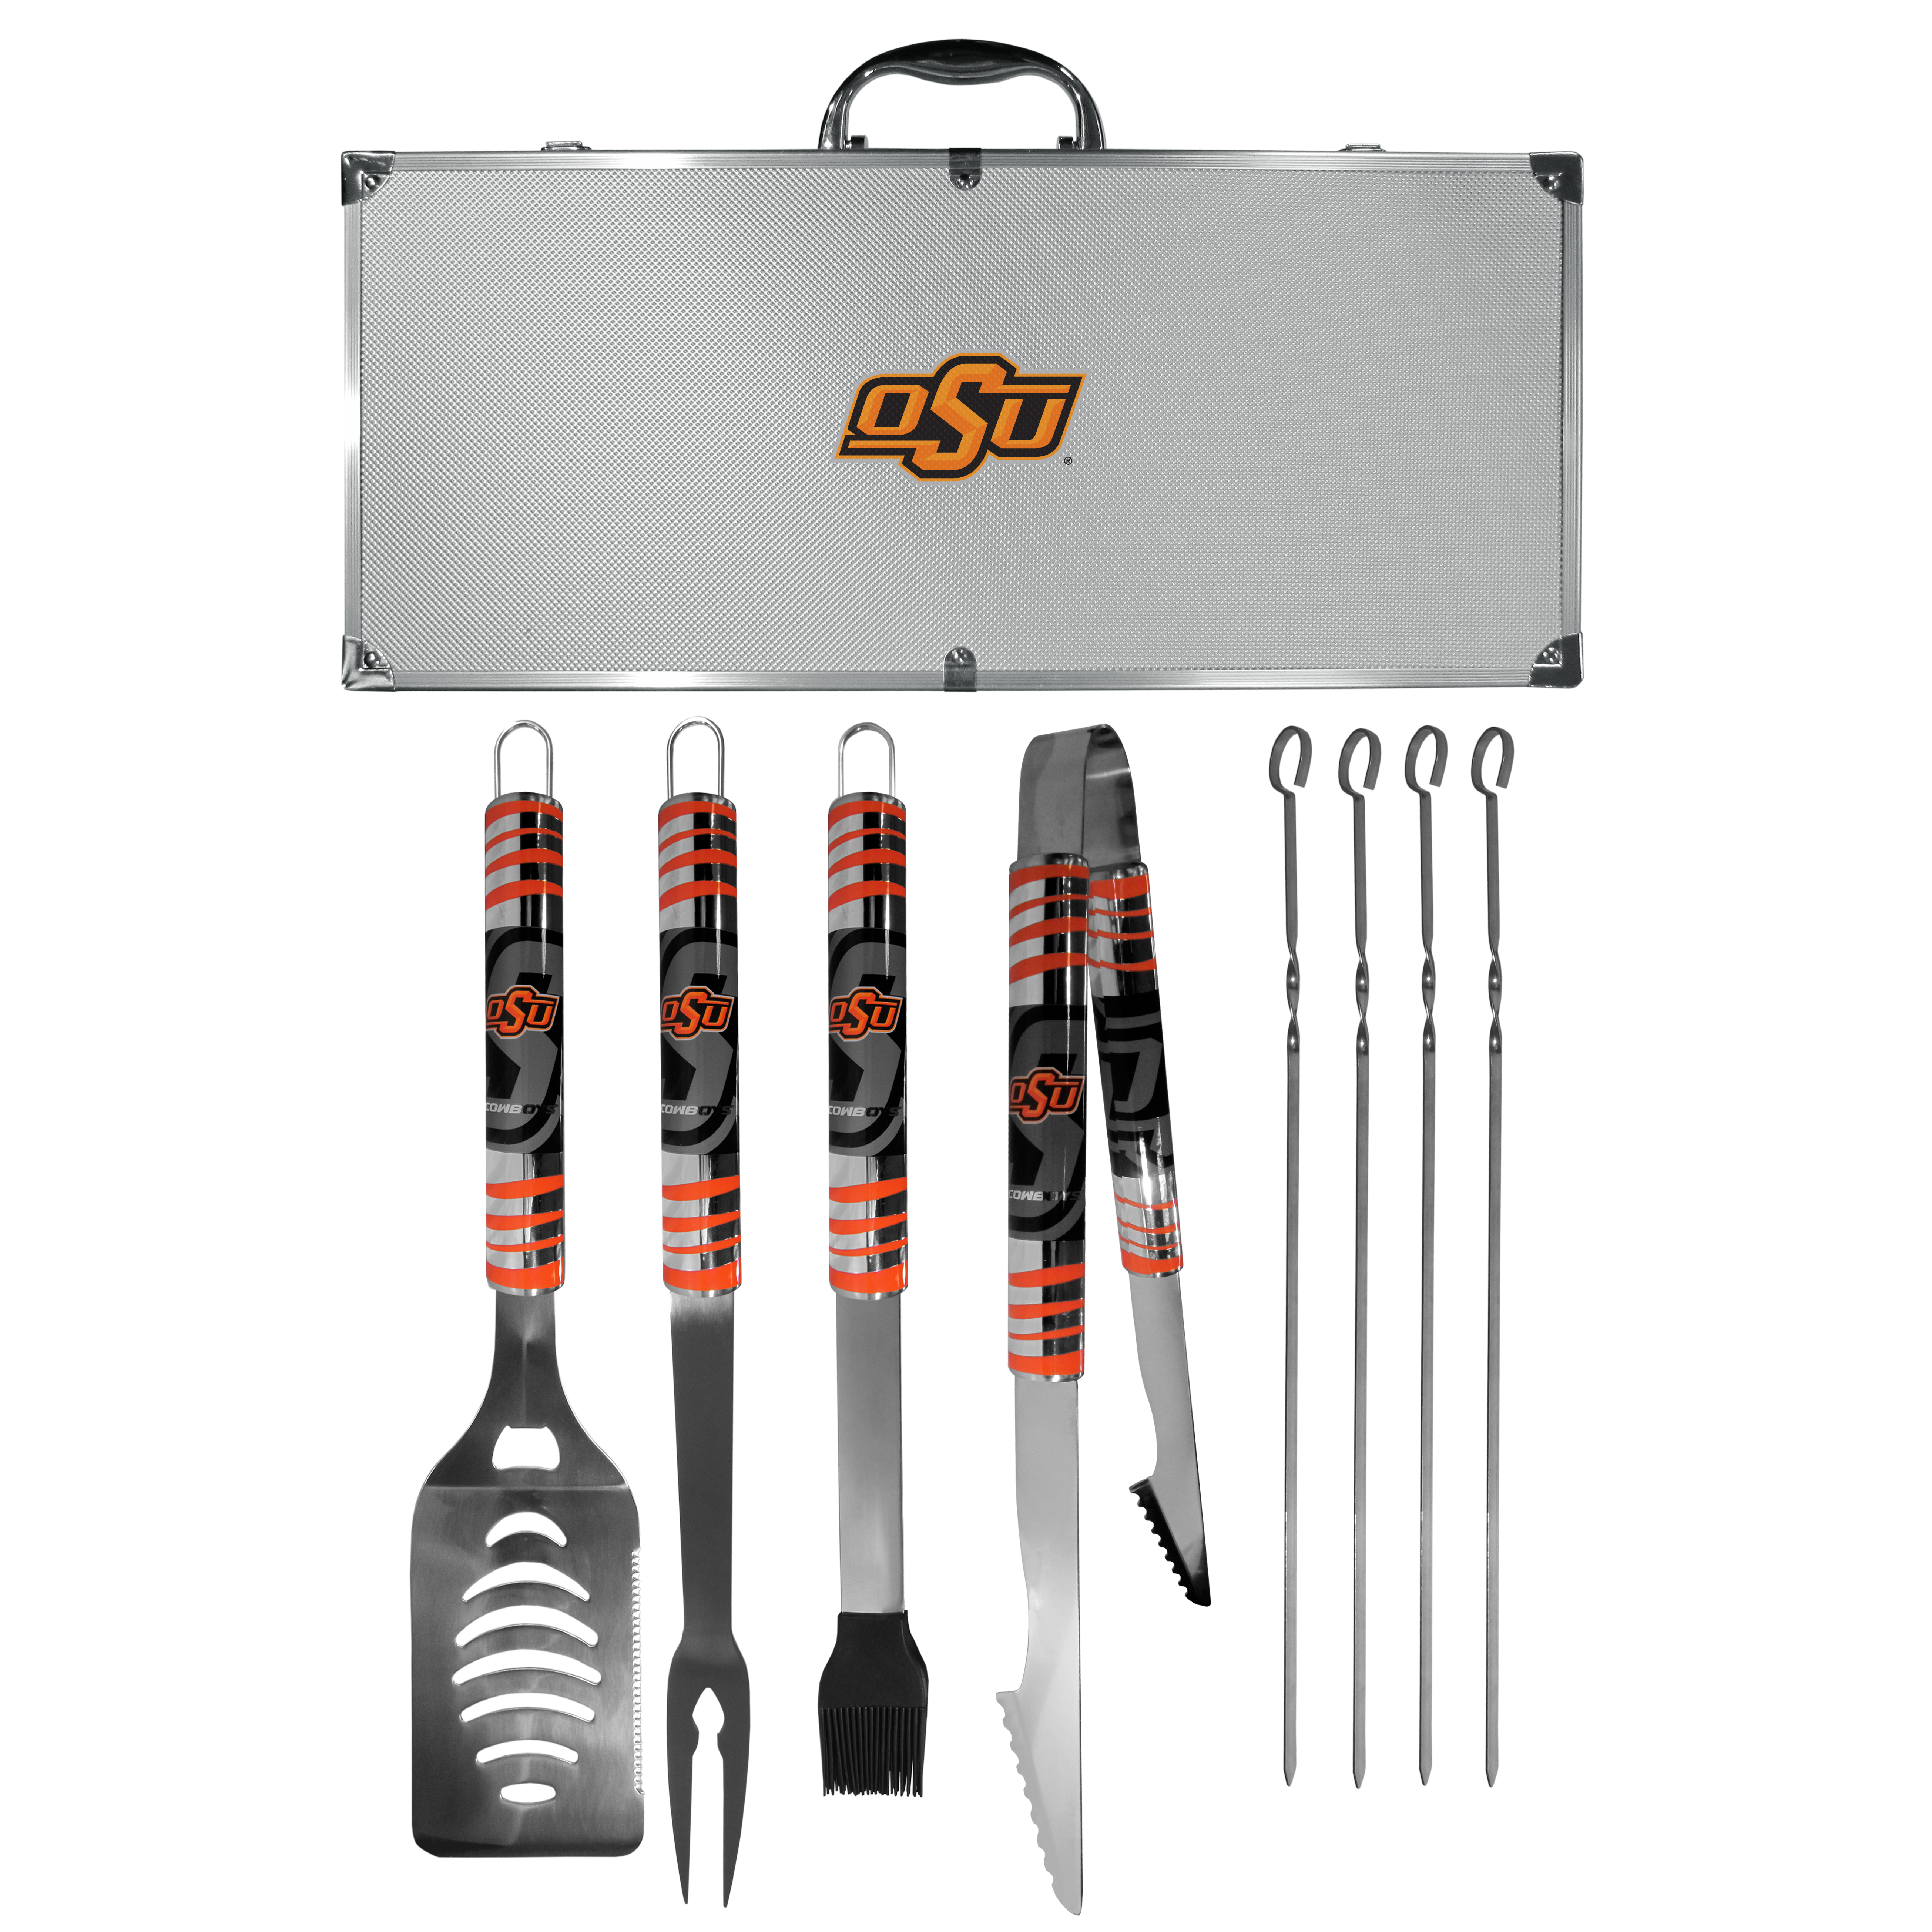 Oklahoma St. Cowboys 8 pc Tailgater BBQ Set - This is the ultimate Oklahoma St. Cowboys tailgate accessory! The high quality, 420 grade stainless steel tools are durable and well-made enough to make even the pickiest grill master smile. This complete grill accessory kit includes; 4 skewers, spatula with bottle opener and serrated knife edge, basting brush, tongs and a fork. The 18 inch metal carrying case is perfect for great outdoor use making grilling an ease while camping, tailgating or while having a game day party on your patio. The tools are 17 inches long and feature vivid team graphics. The metal case features a large team emblem with exceptional detail. This high-end men's gift is sure to be a hit as a present on Father's Day or Christmas.